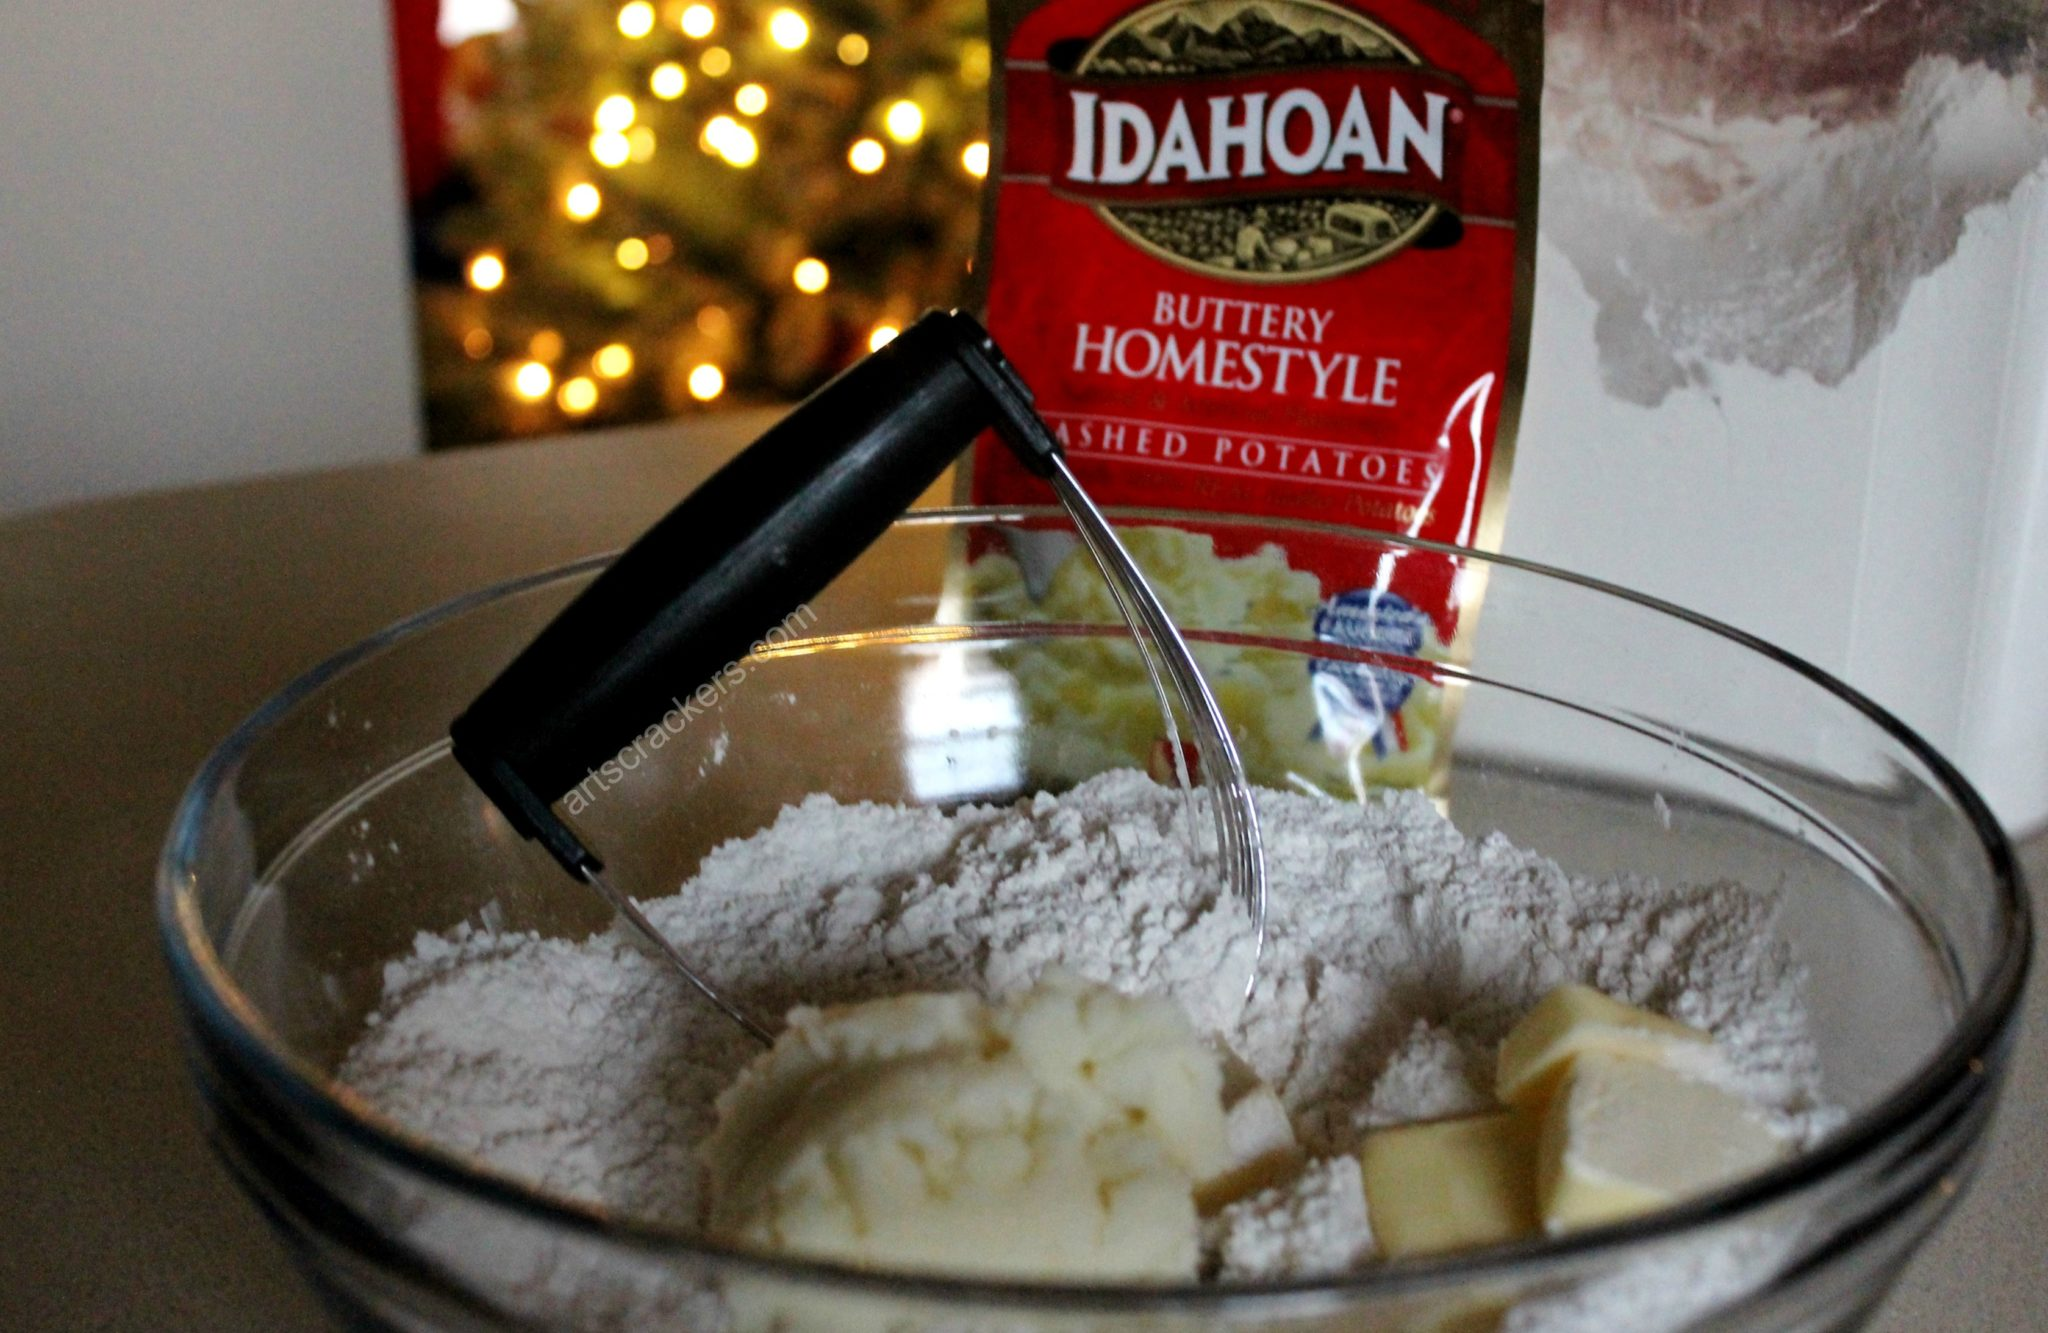 Shortbread Cookies with Idahoan Mashed Potatoes Wet Ingredients